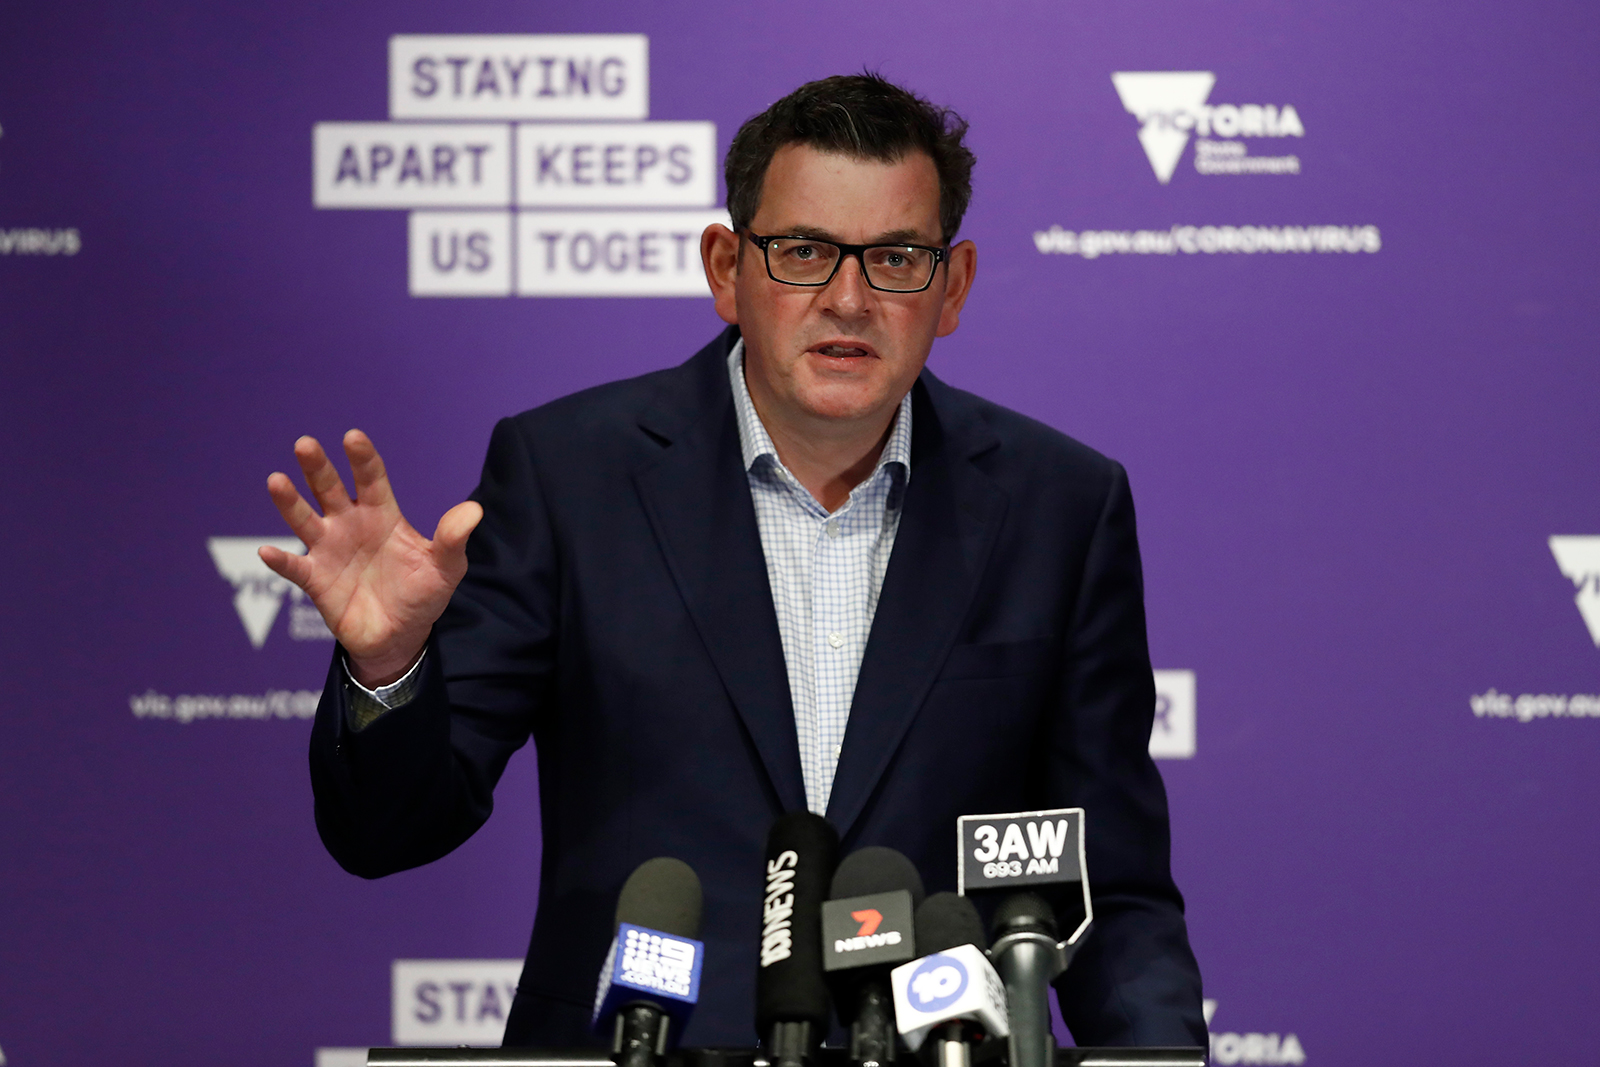 Victorian Premier Daniel Andrews speaks to the media during a news conference in Melbourne, Australia on Sunday, August 2.